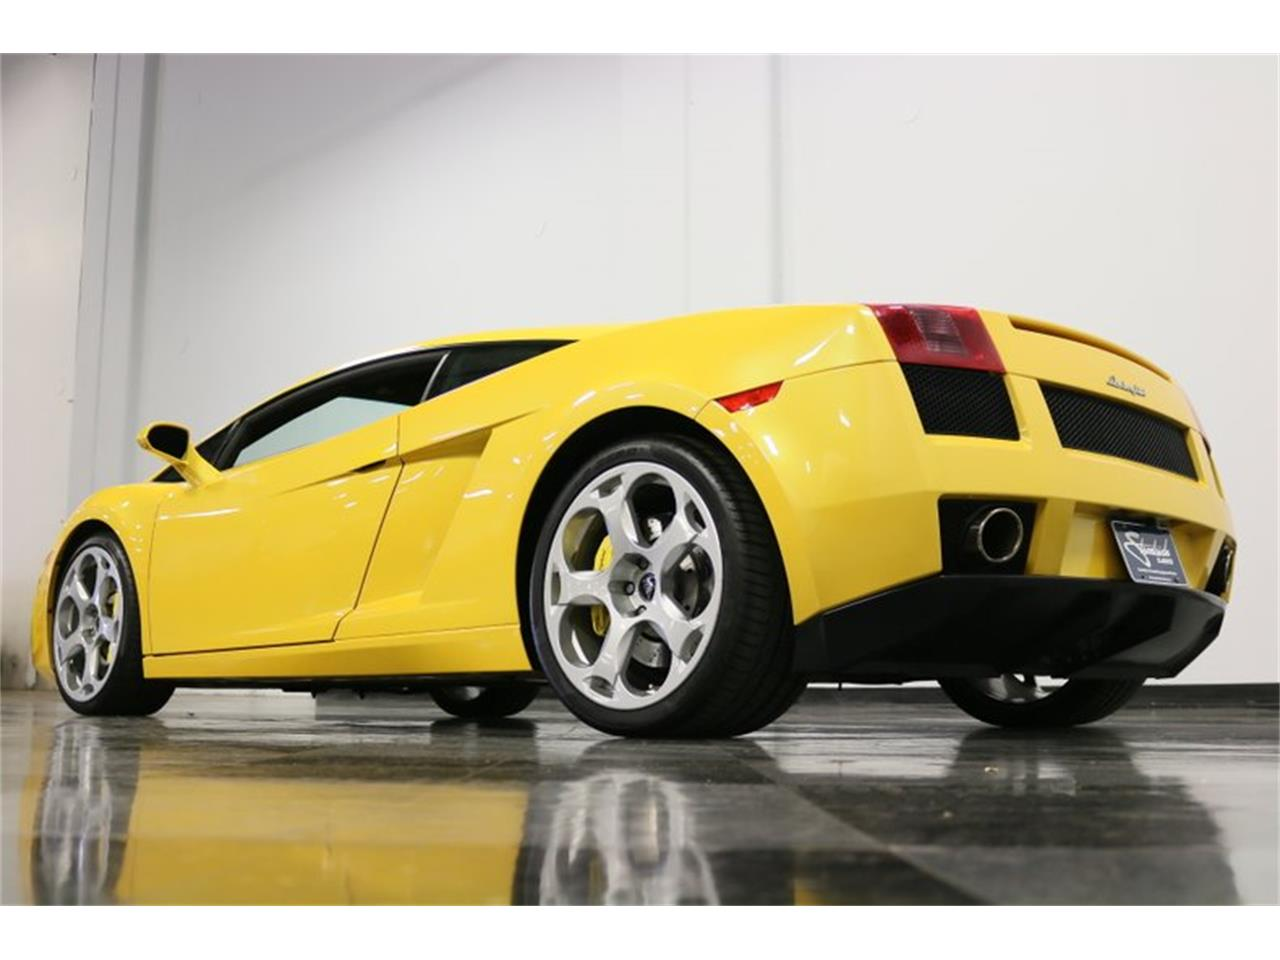 Large Picture of 2004 Lamborghini Gallardo located in Texas Offered by Streetside Classics - Dallas / Fort Worth - PWGV